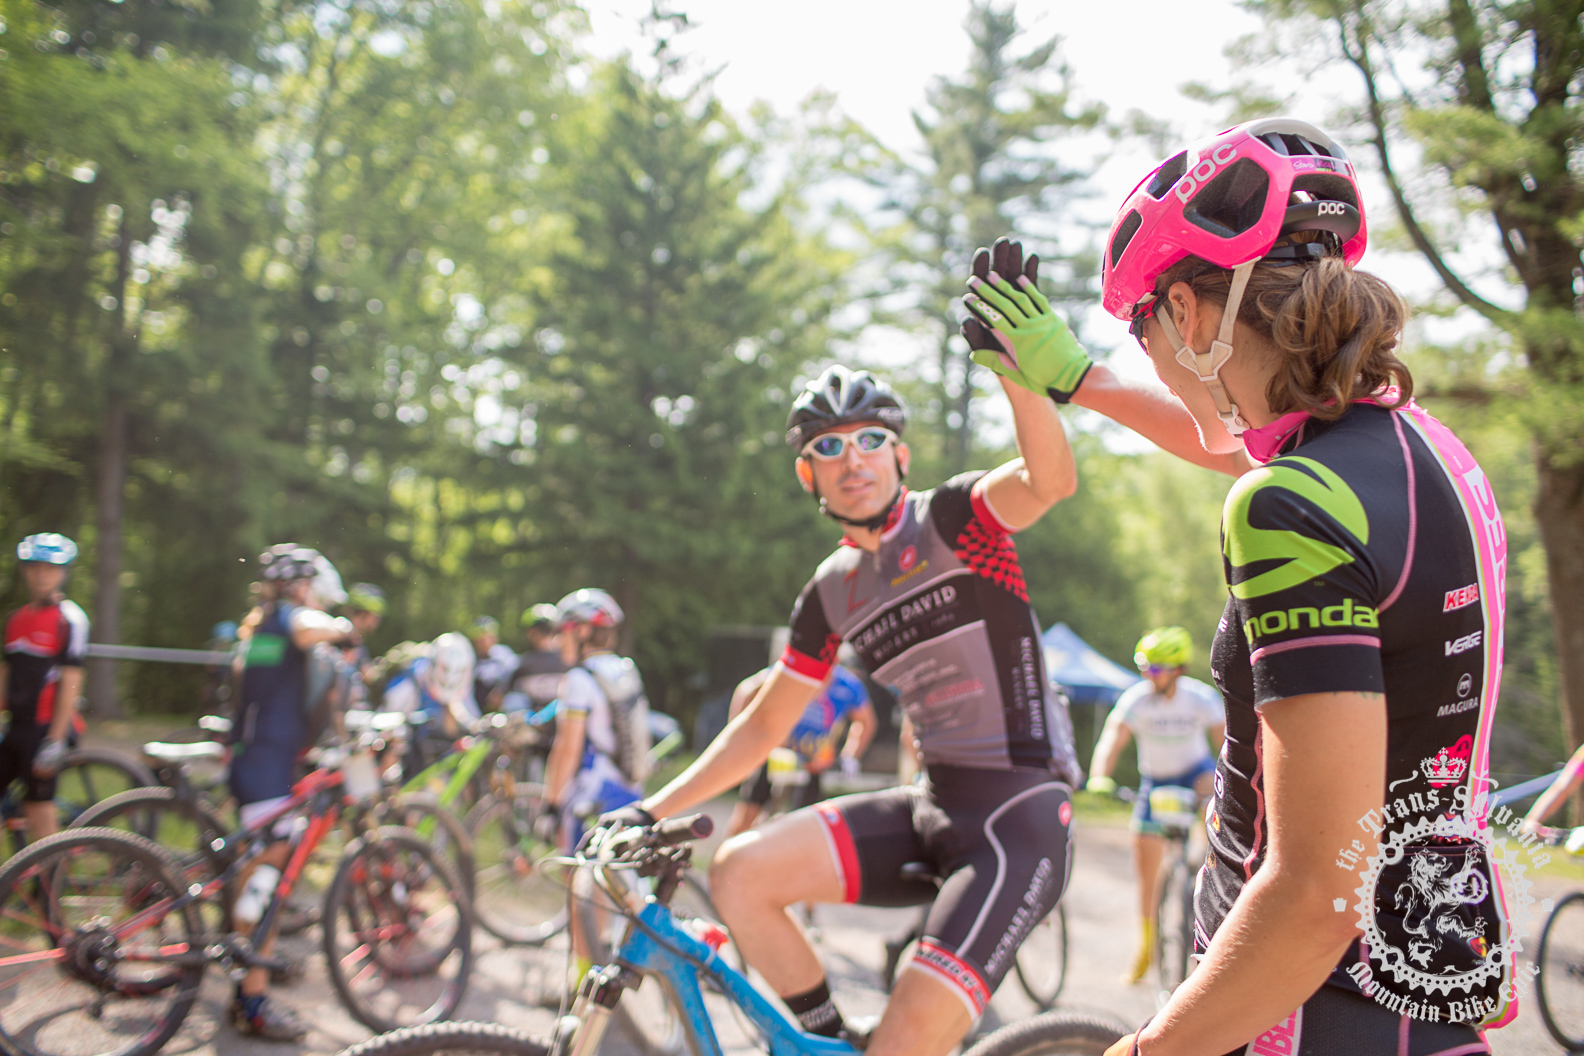 Mical Dyck (Stan's NoTubes Elite Women's Team) congratulates other racers at the finish.